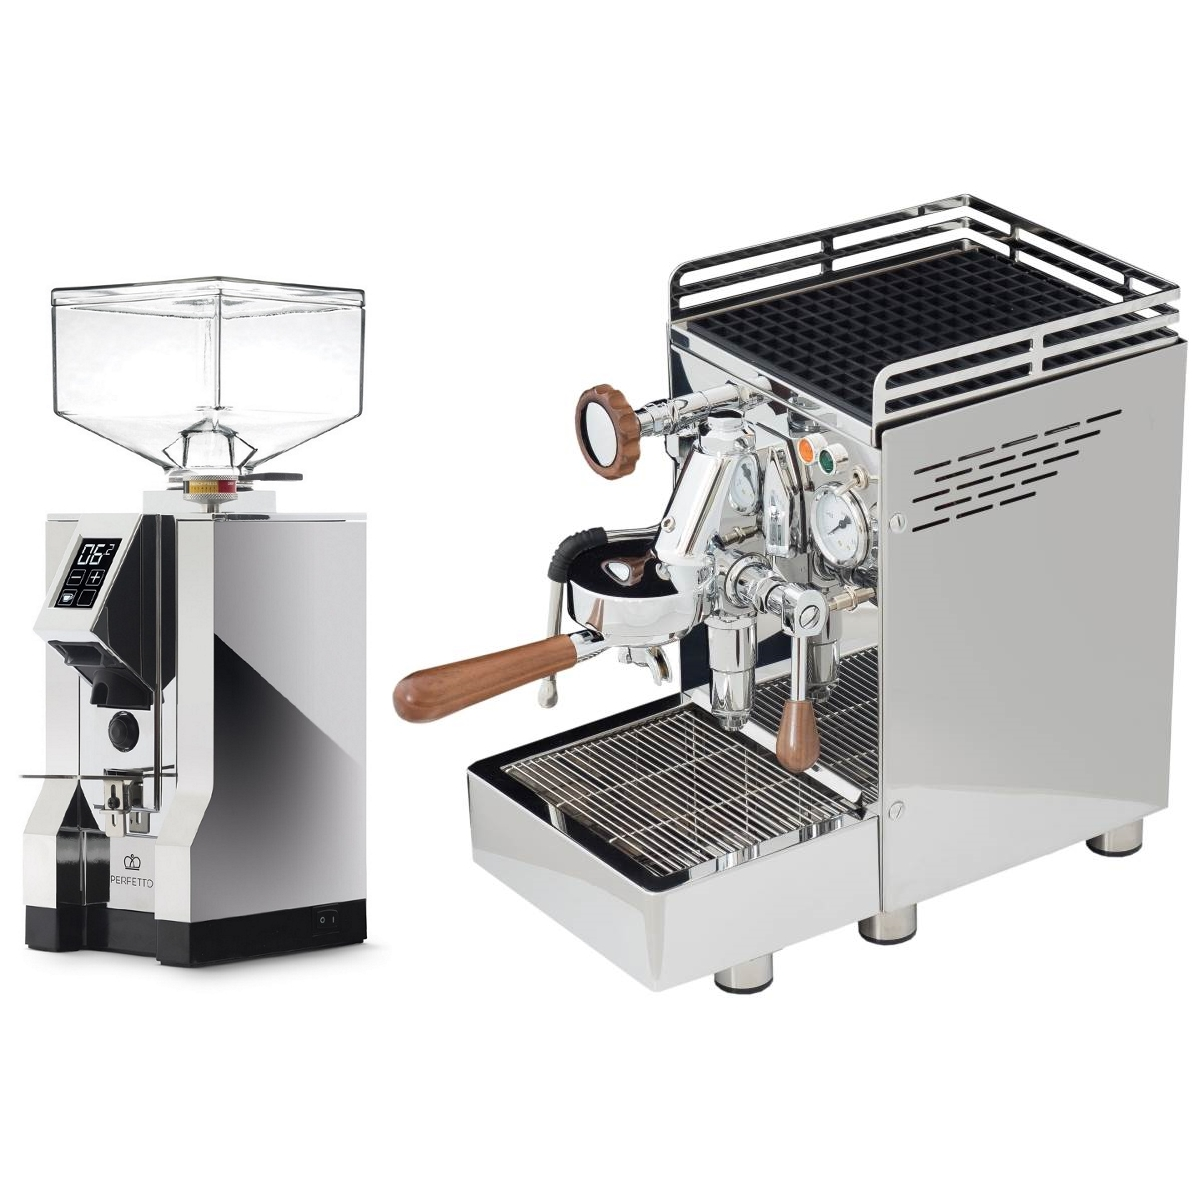 Coffee machine 969.coffee Elba3 + Coffee grinder Eureka Mignon Specialita' 16CR - Chrome